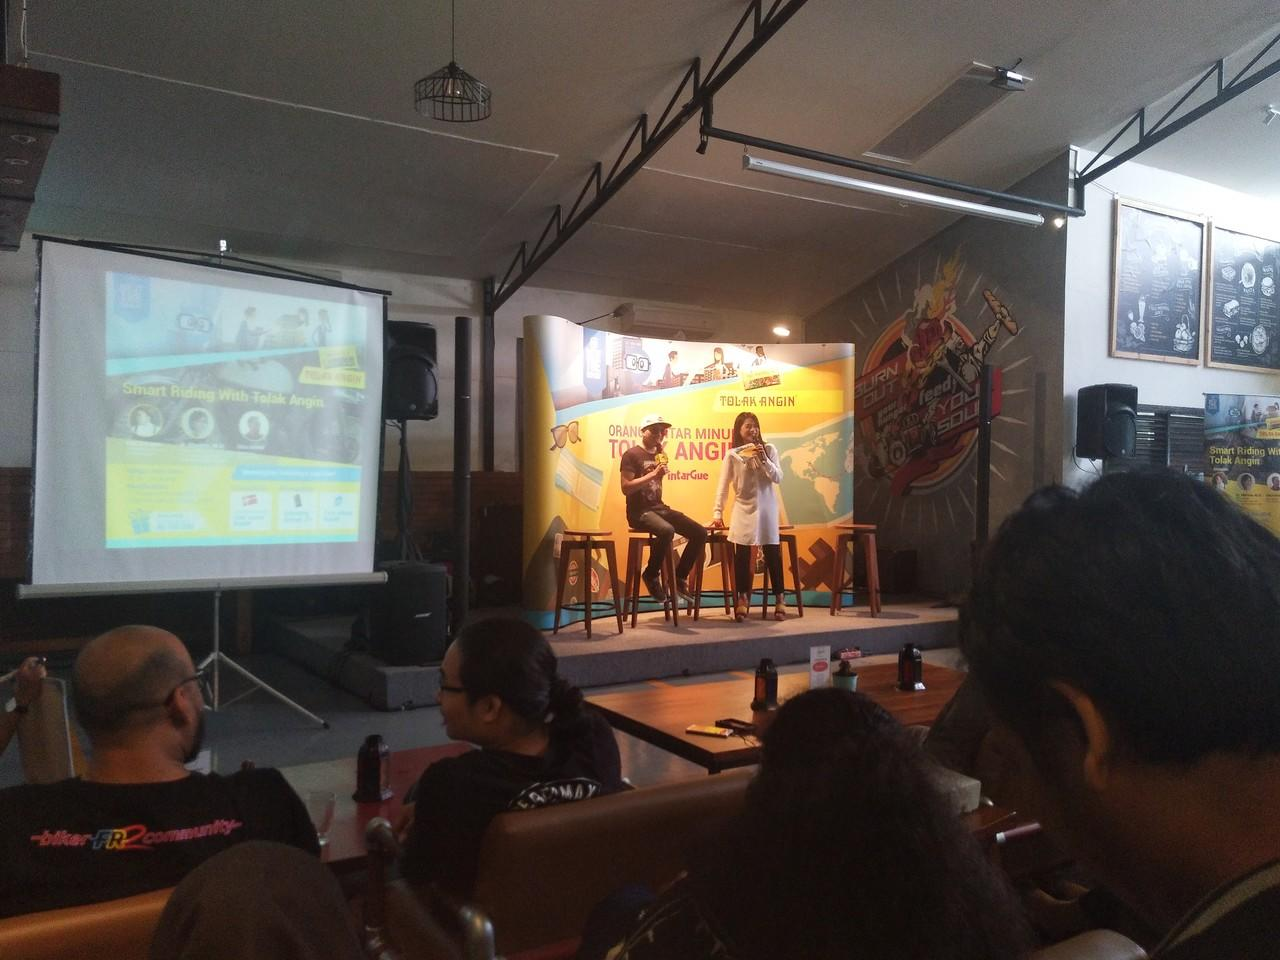 [Field Report]Kemeriahan Kaskus Meet The Expert with Tolak Angin #CaraPintarGueMTE